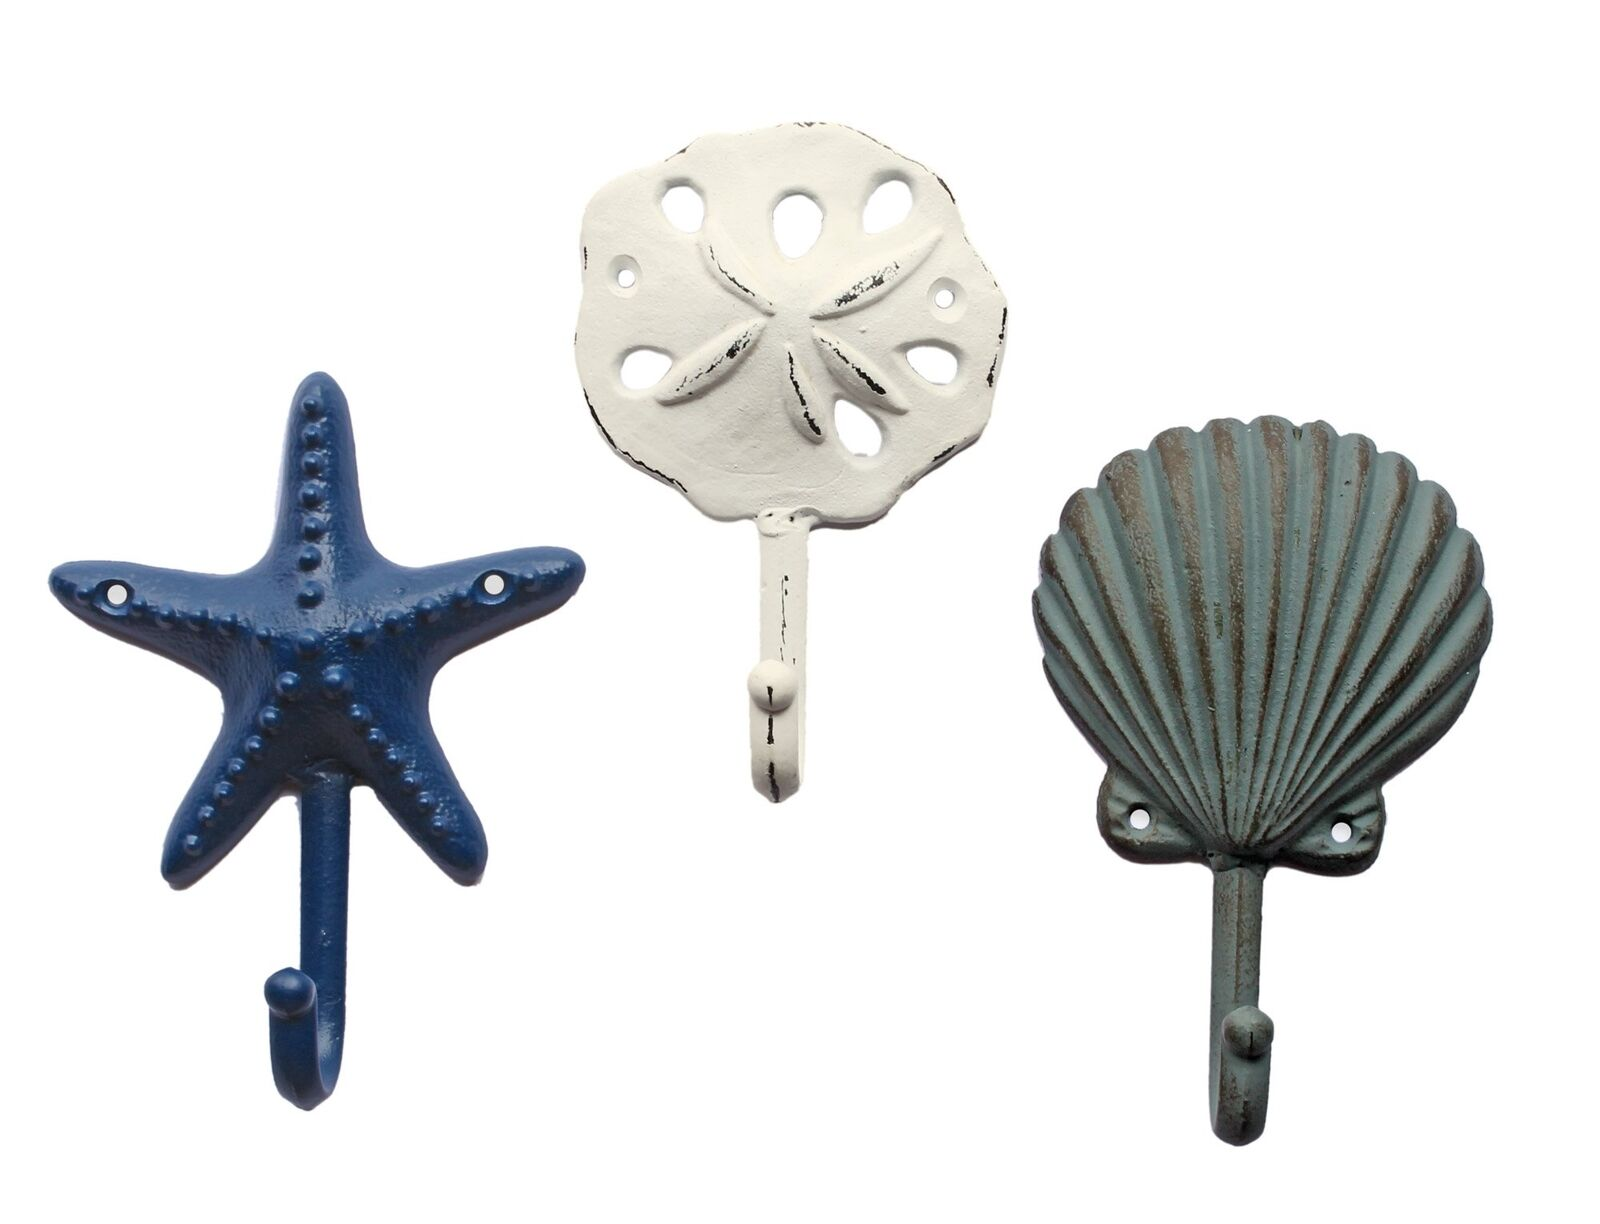 Sea Treasures Wall Hooks - Set of 3 - Antique Weathered Hangers for Coats,